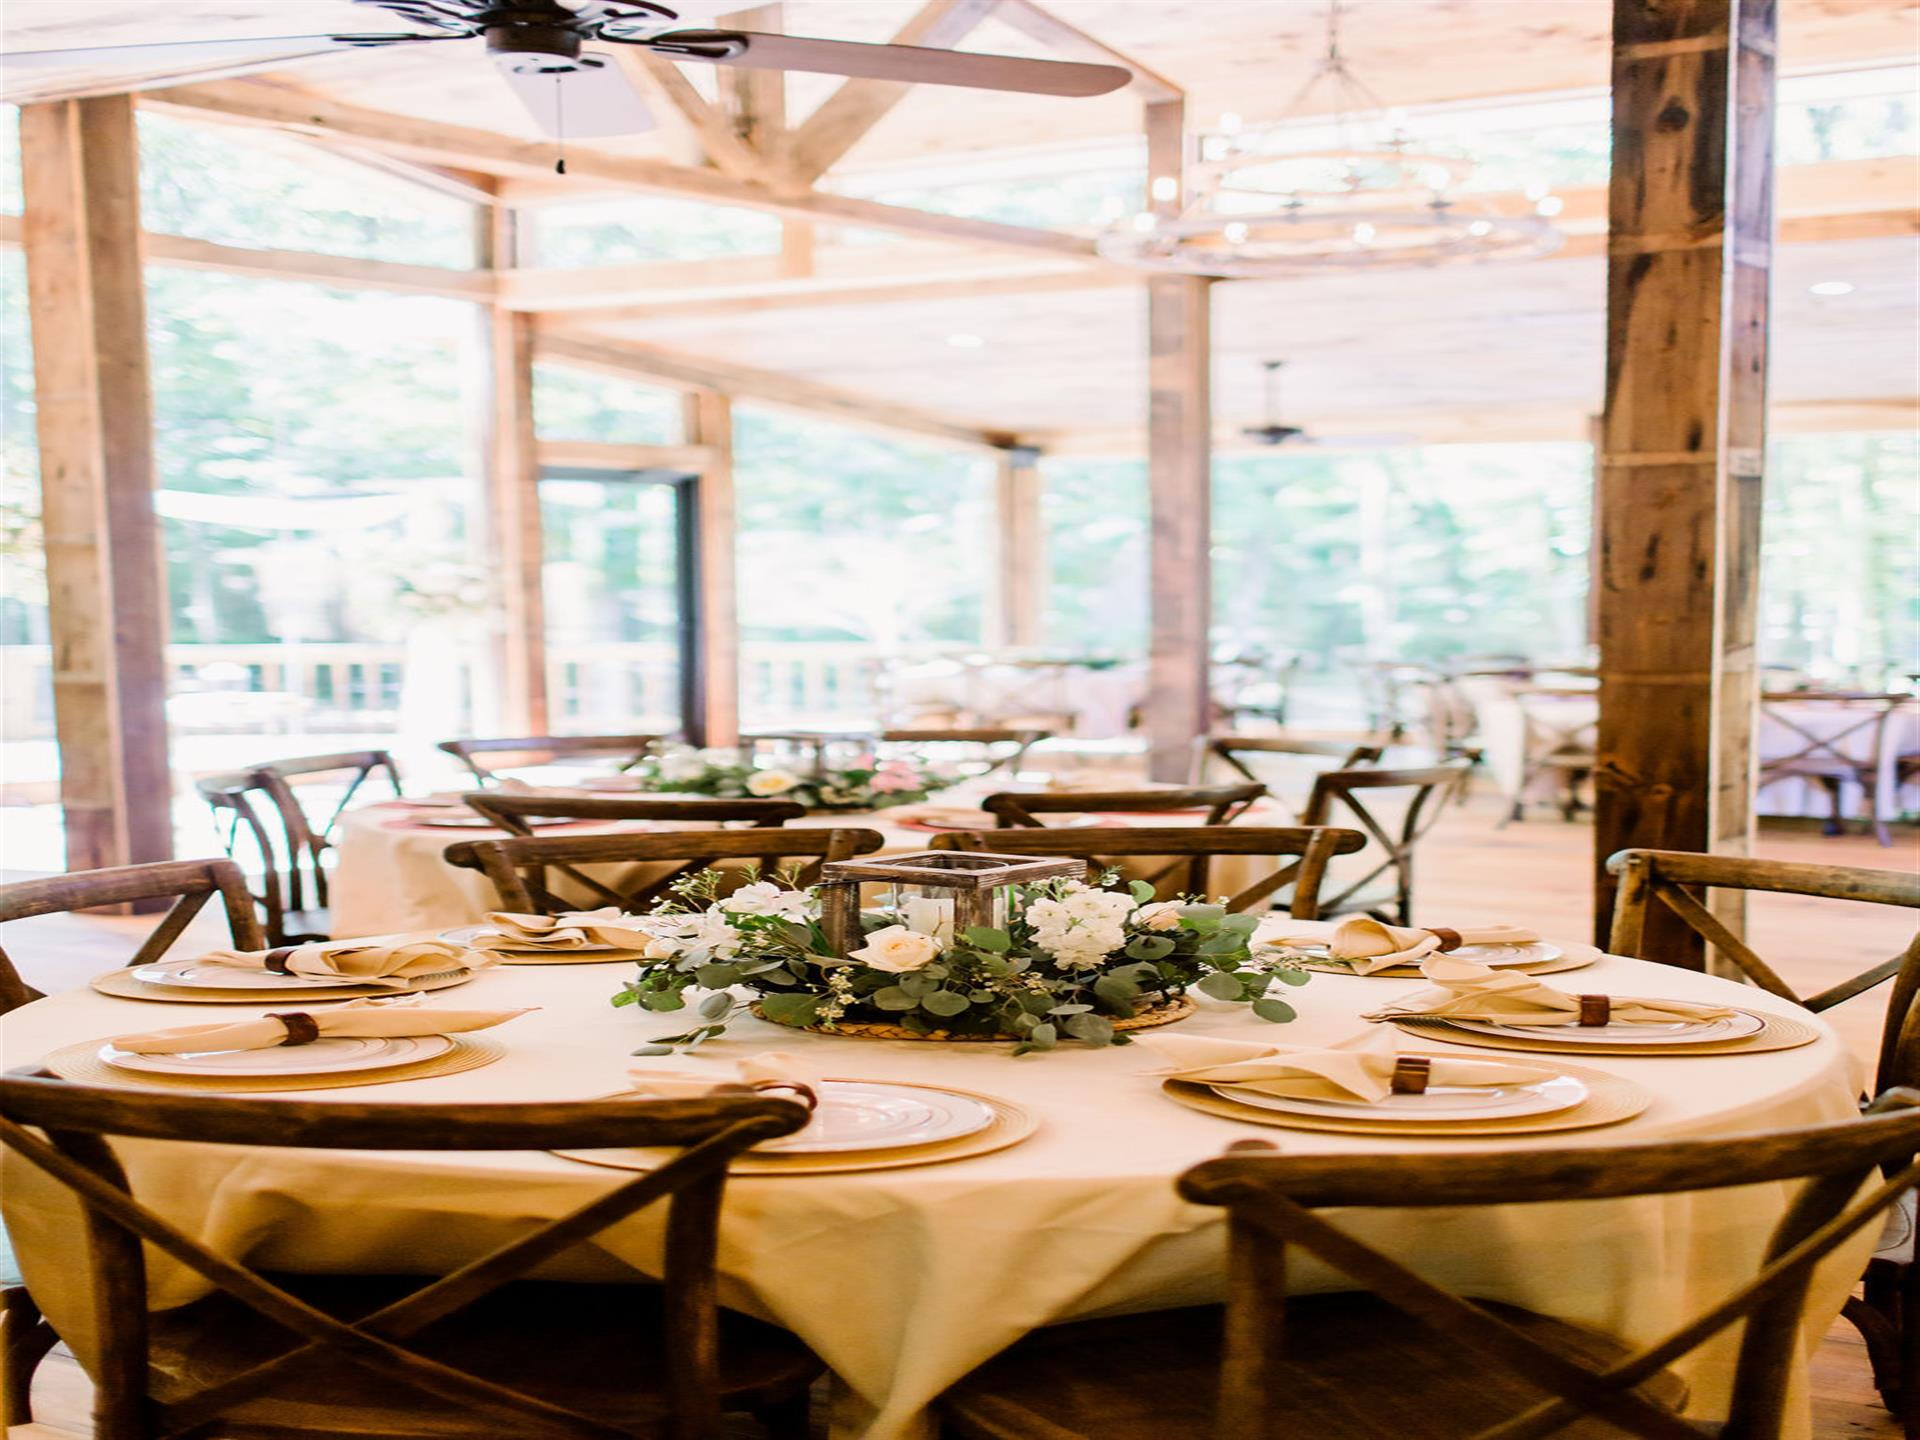 circular table with wooden chairs, table cloth and dining plates and napkins on top. flower display in the middle of table